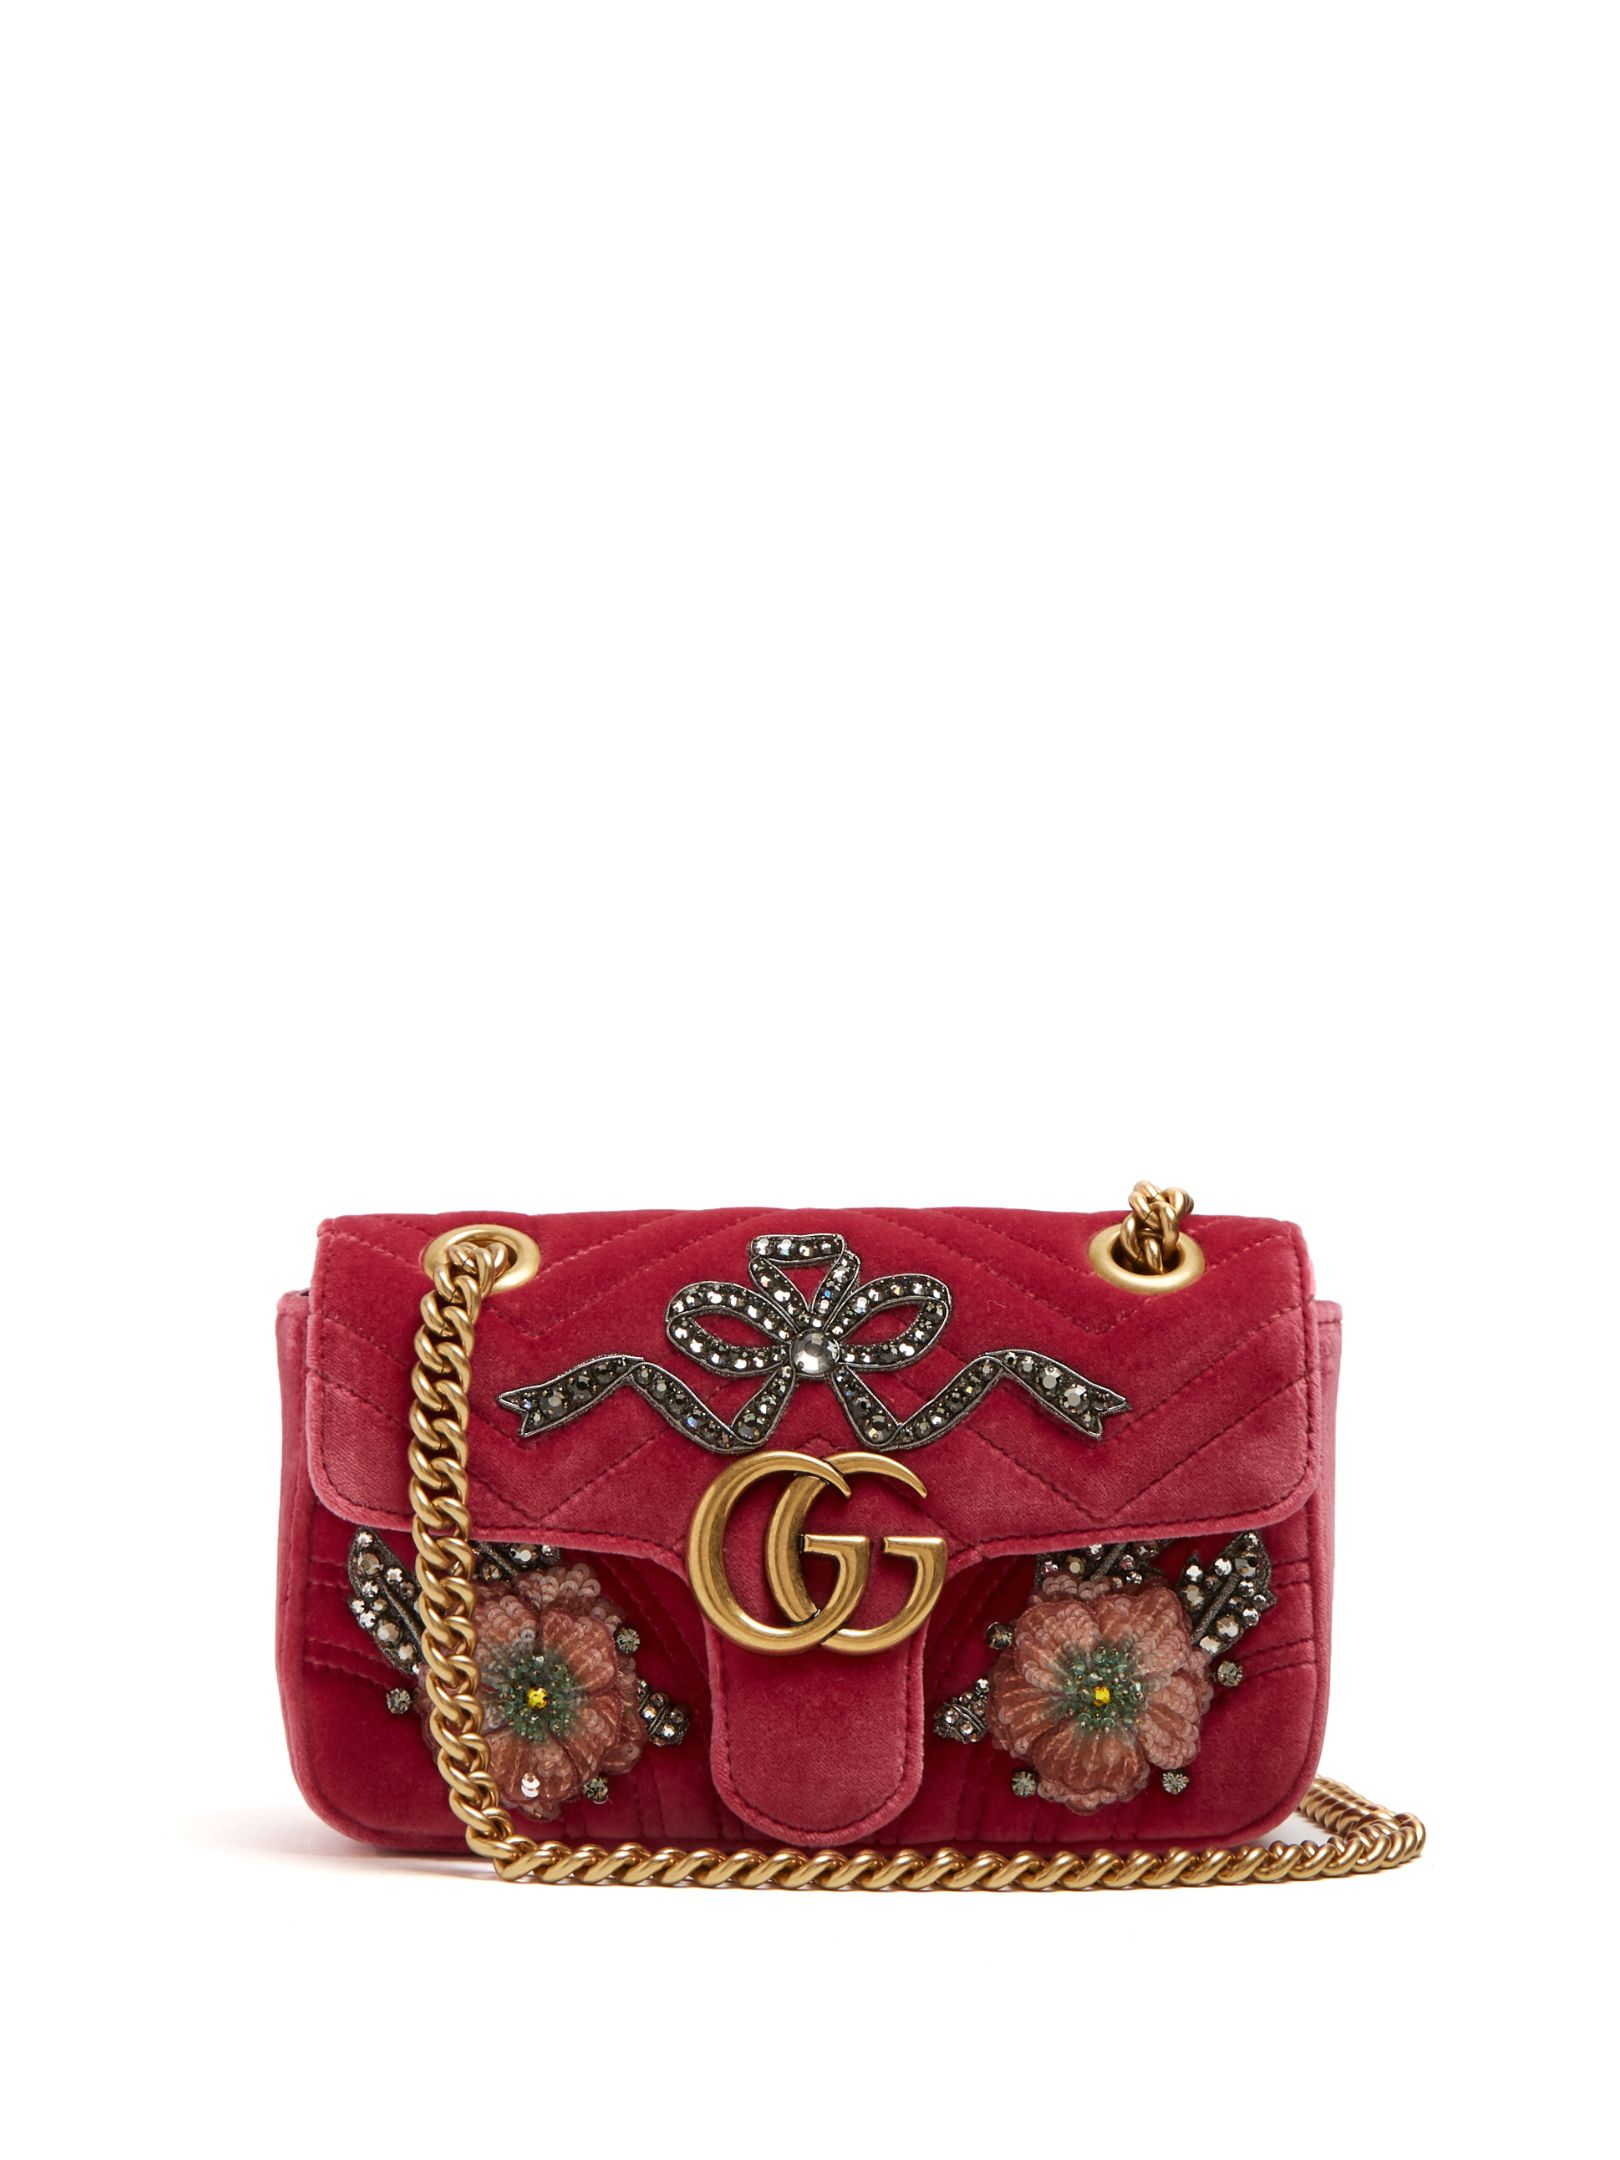 GG Marmont mini quilted-velvet cross-body bag   Gucci    MATCHESFASHION.COM UK   260f6598630